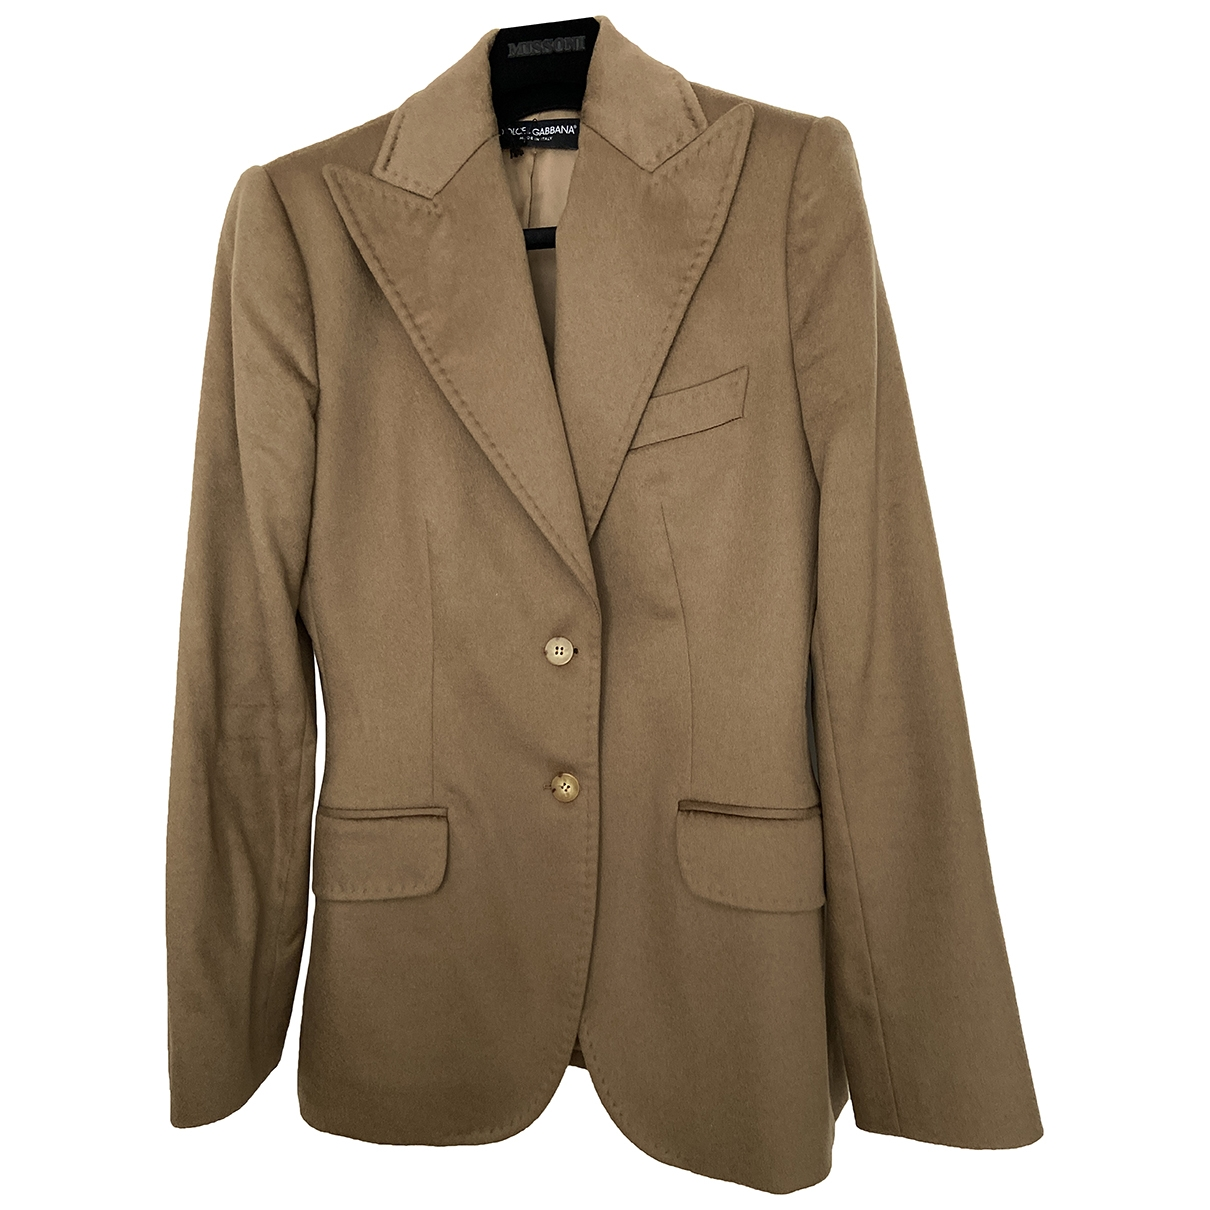 Dolce & Gabbana \N Camel Cashmere jacket for Women 46 IT